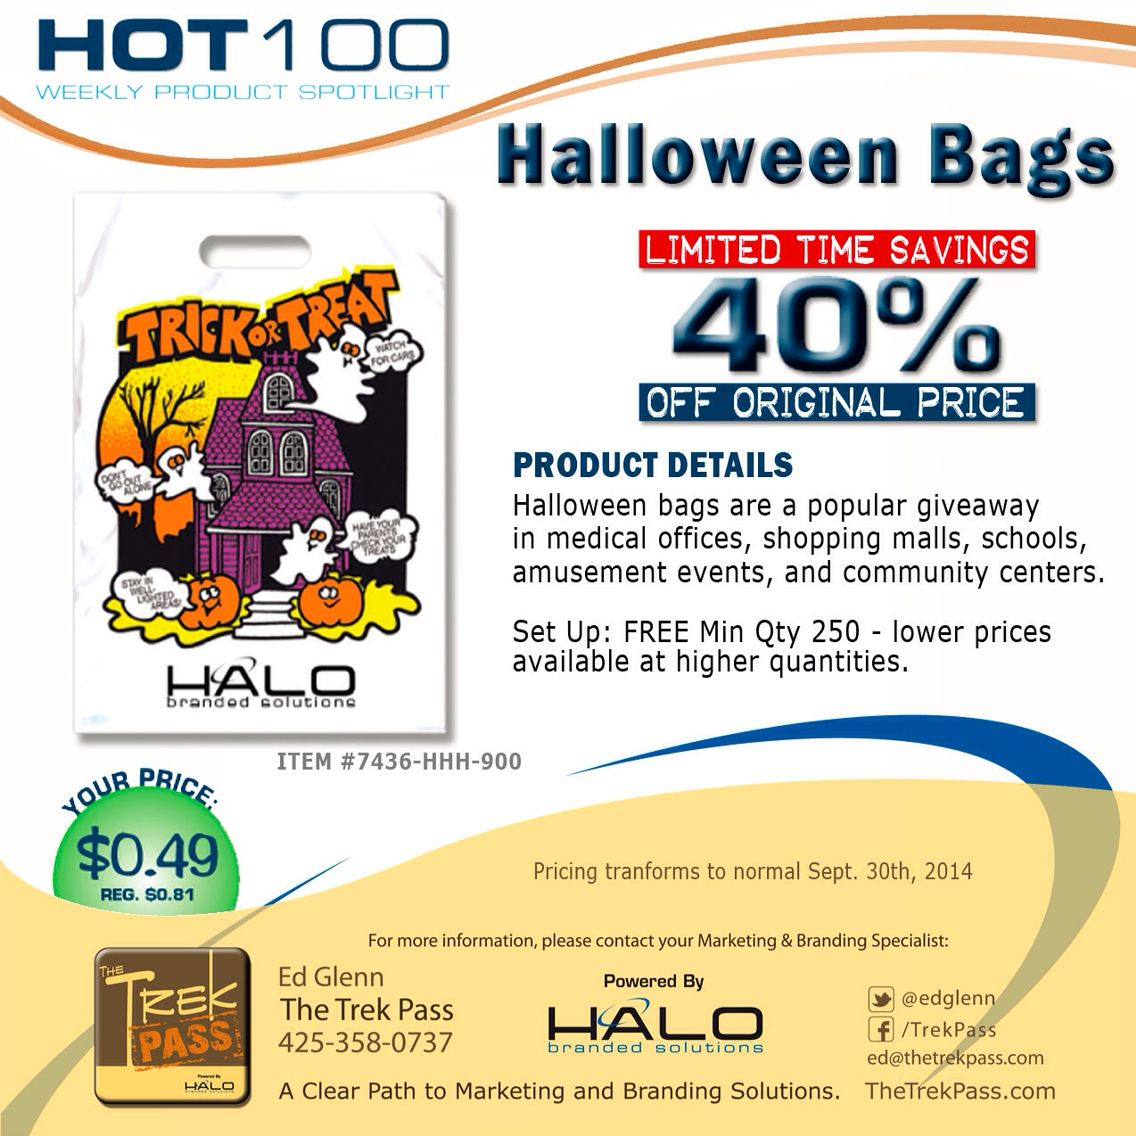 Get ready for Trick-or-Treat with custom imprinted Haunted House Halloween Bags. Great for medical offices, shopping malls, community centers, amusement events, and schools. Add a discount coupon for your company's goods and services to each bag handed out as a 'treat' to Mom and Dad.  #promoproducts #branding #promotionalproducts #holiday #marketing #incentives #advertising #giveaway #adspecialties #sale #bestseller #bag #trickortreat #Halobrandedsolutions